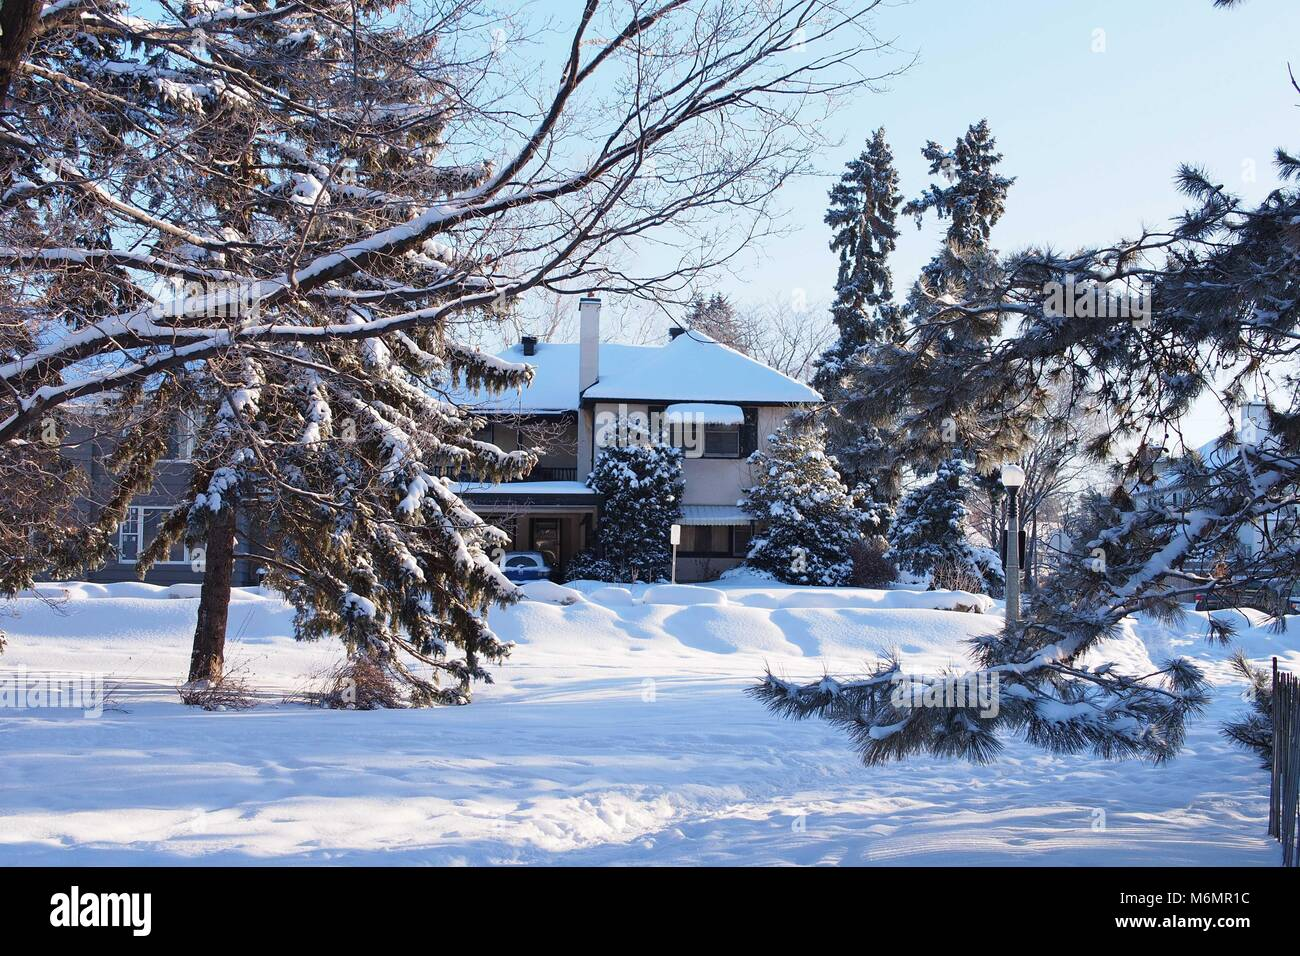 A snow covered house and winter street scene in Ottawa, Ontario, Canada. - Stock Image